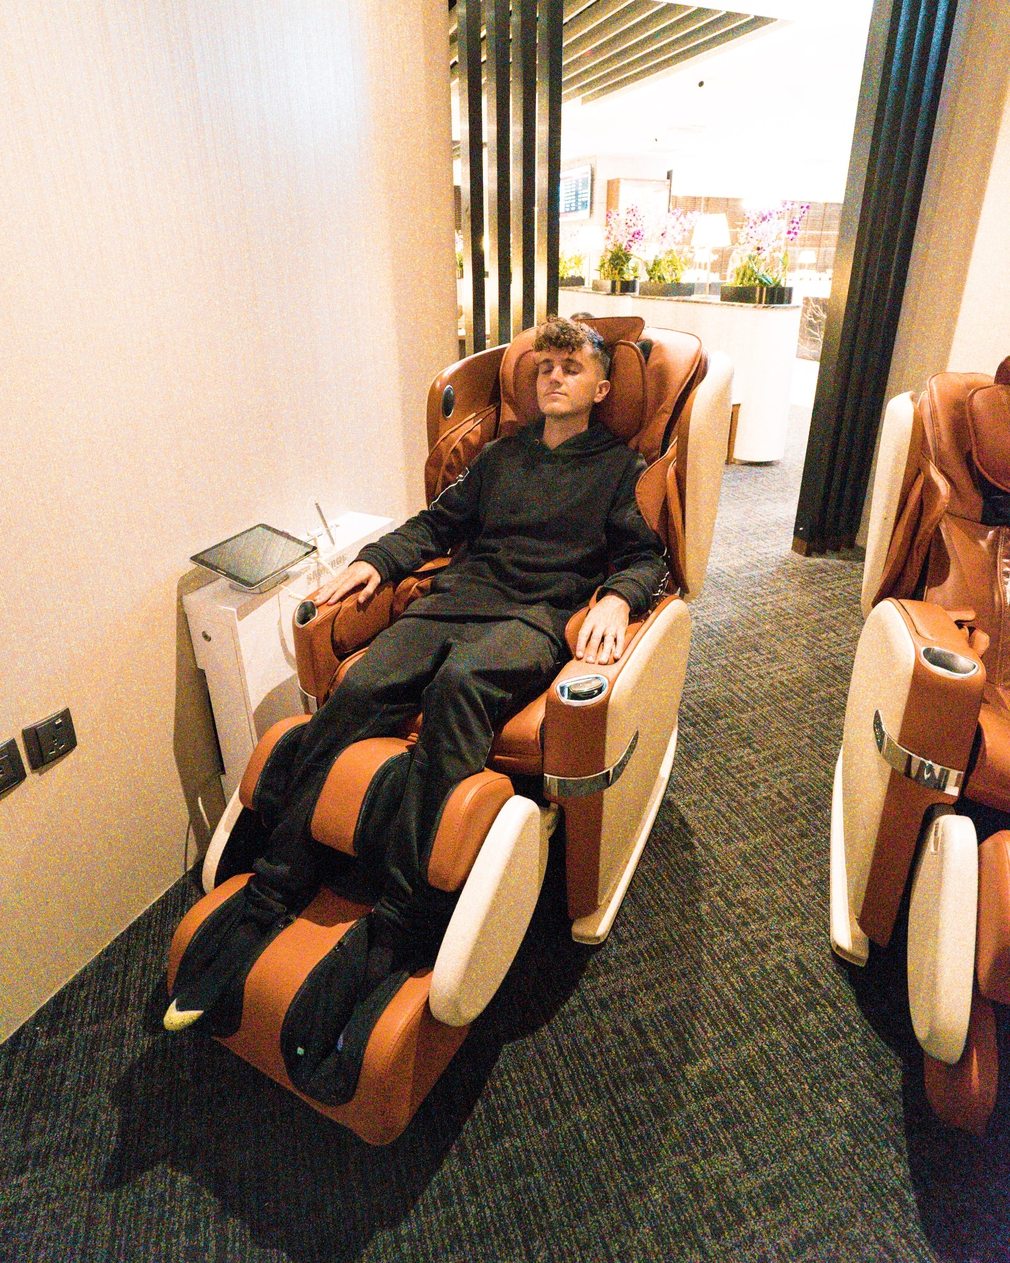 massage chairs in the SATS lounge